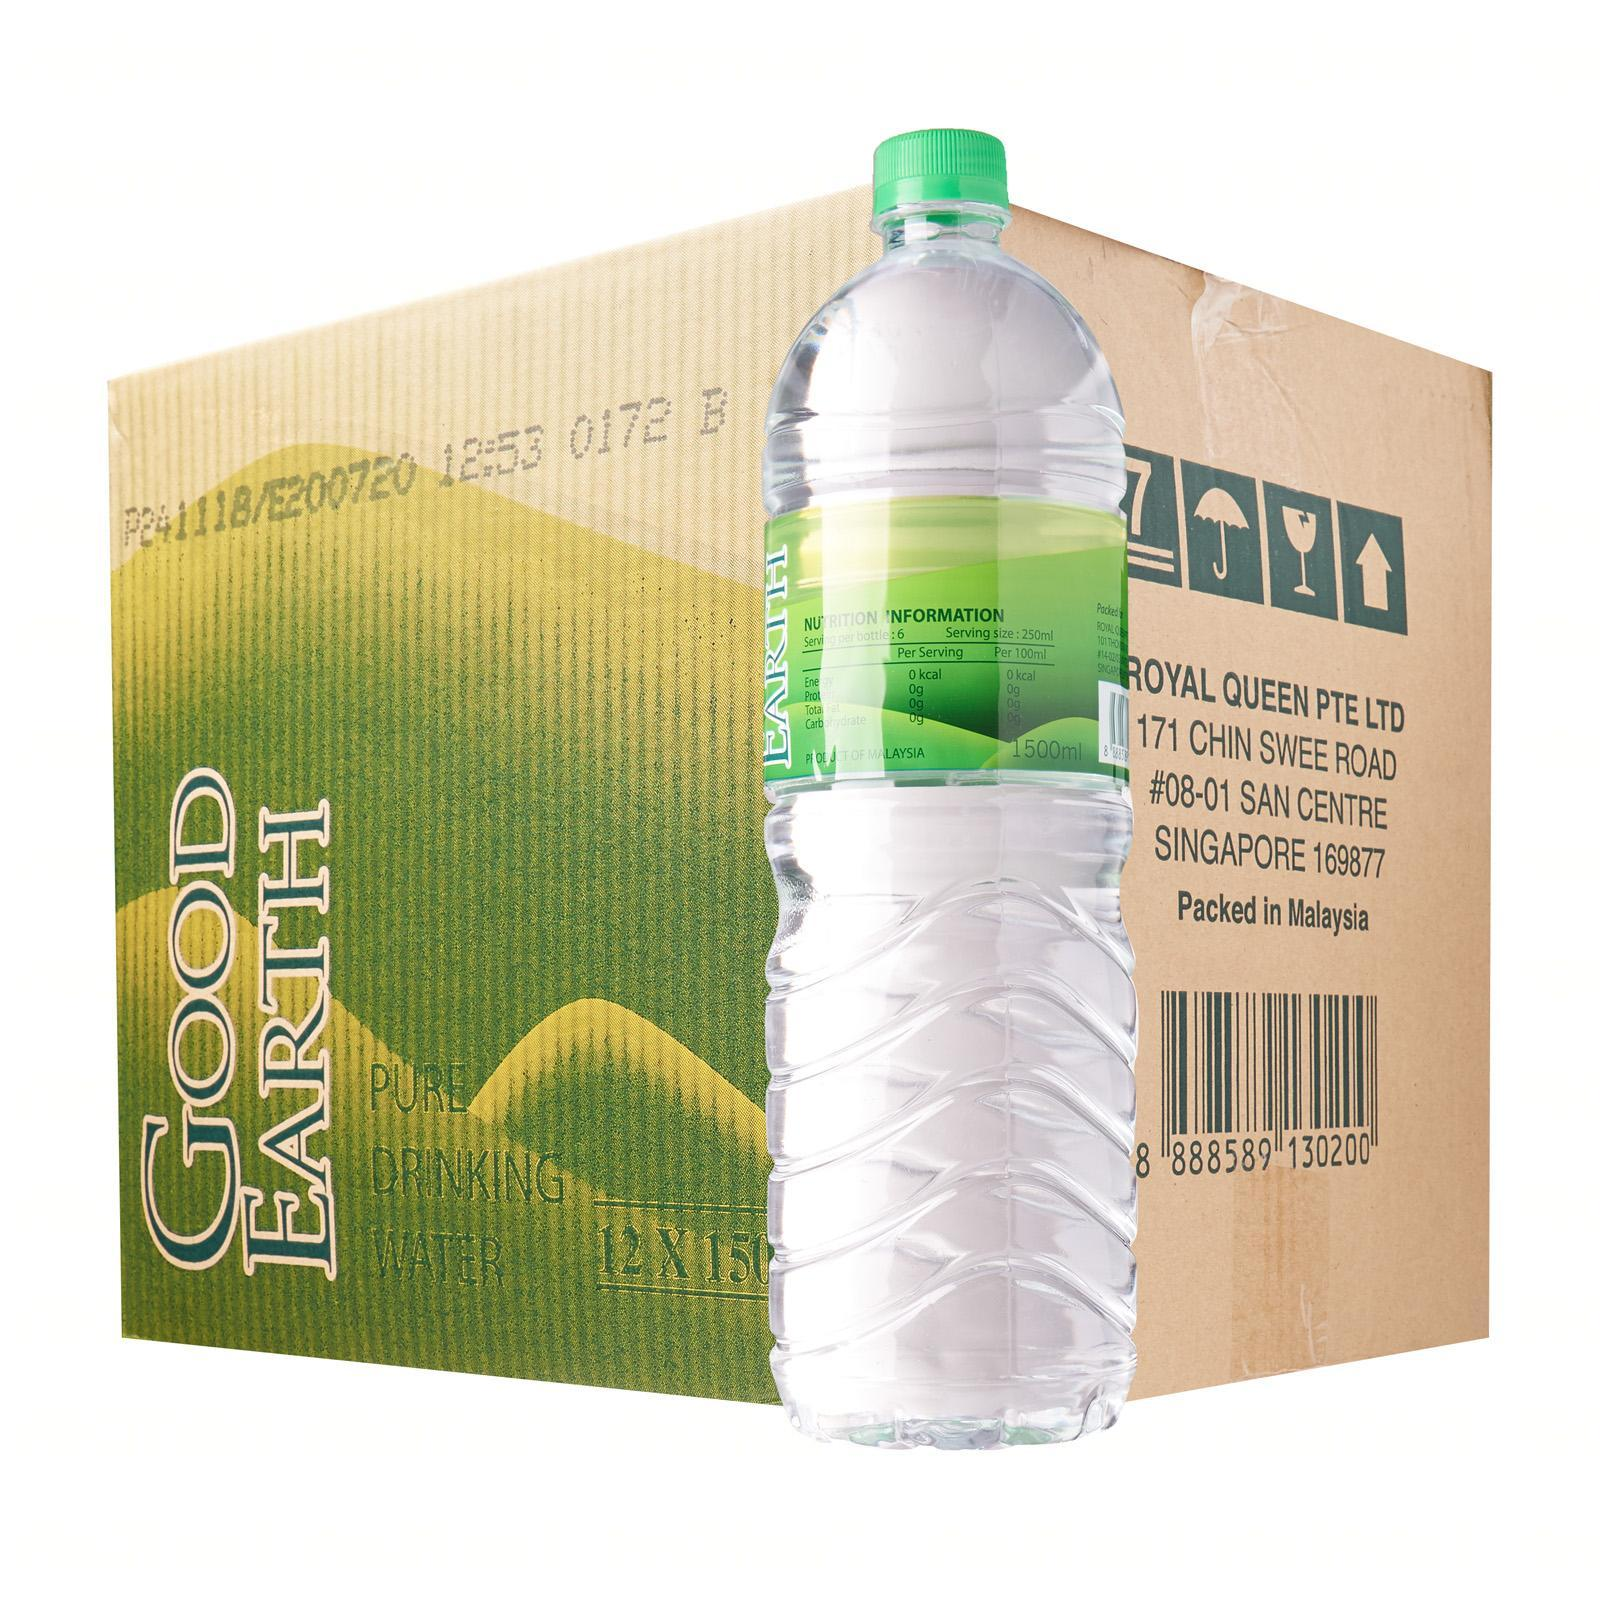 Good Earth Pure Drinking Water 1.5L 12s - Case